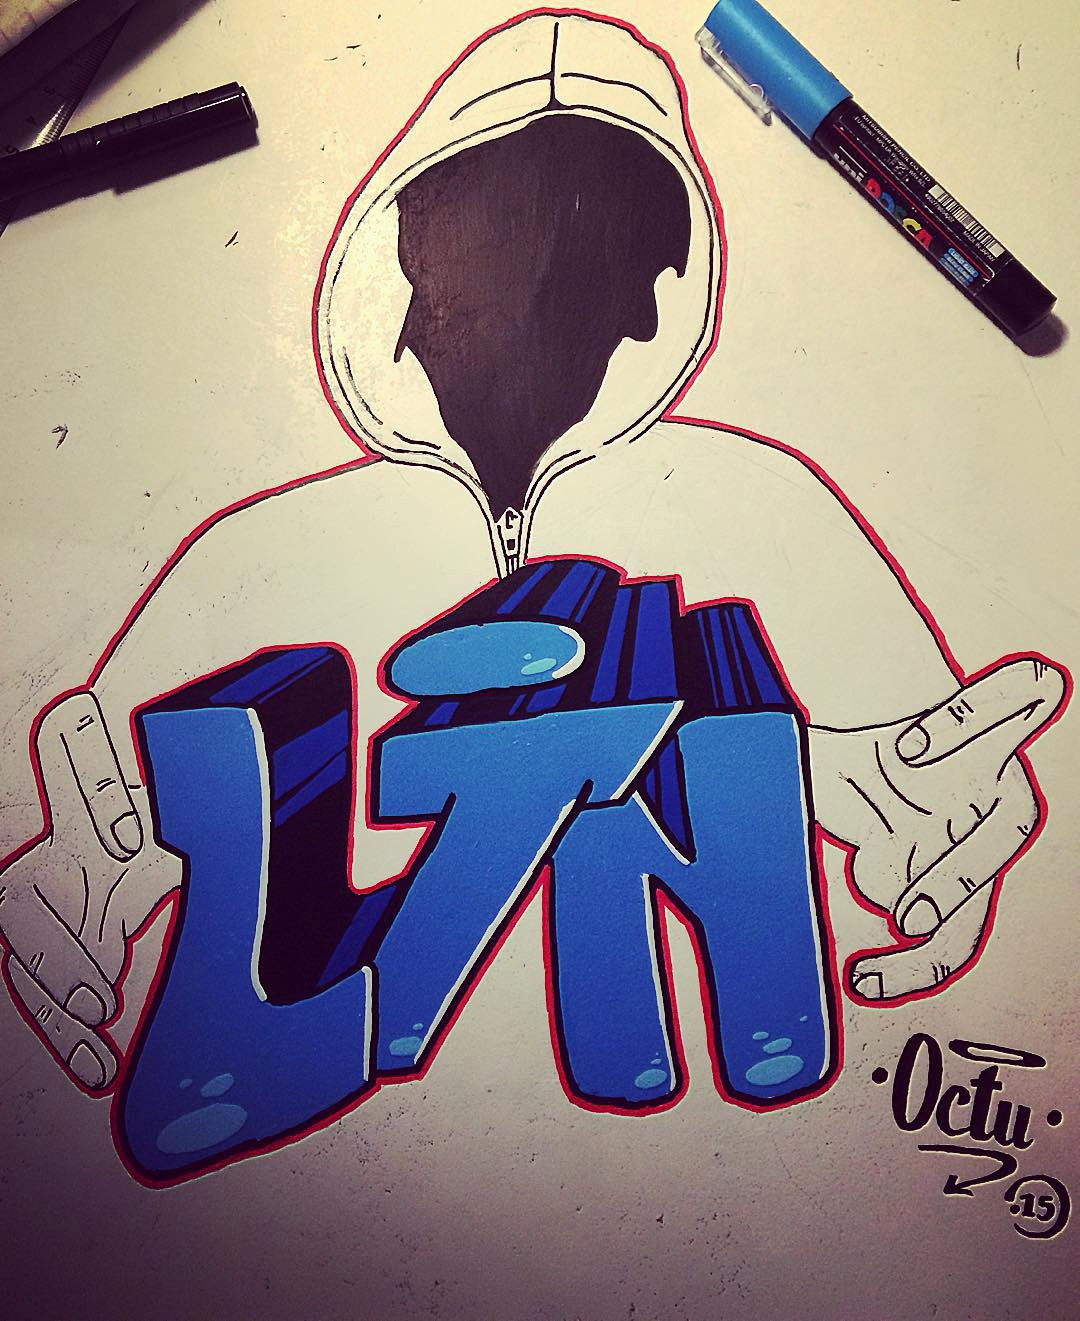 Dessin Bombe De Peinture Graffiti Nouveau Octu Official Hash Tags Deskgram Collection